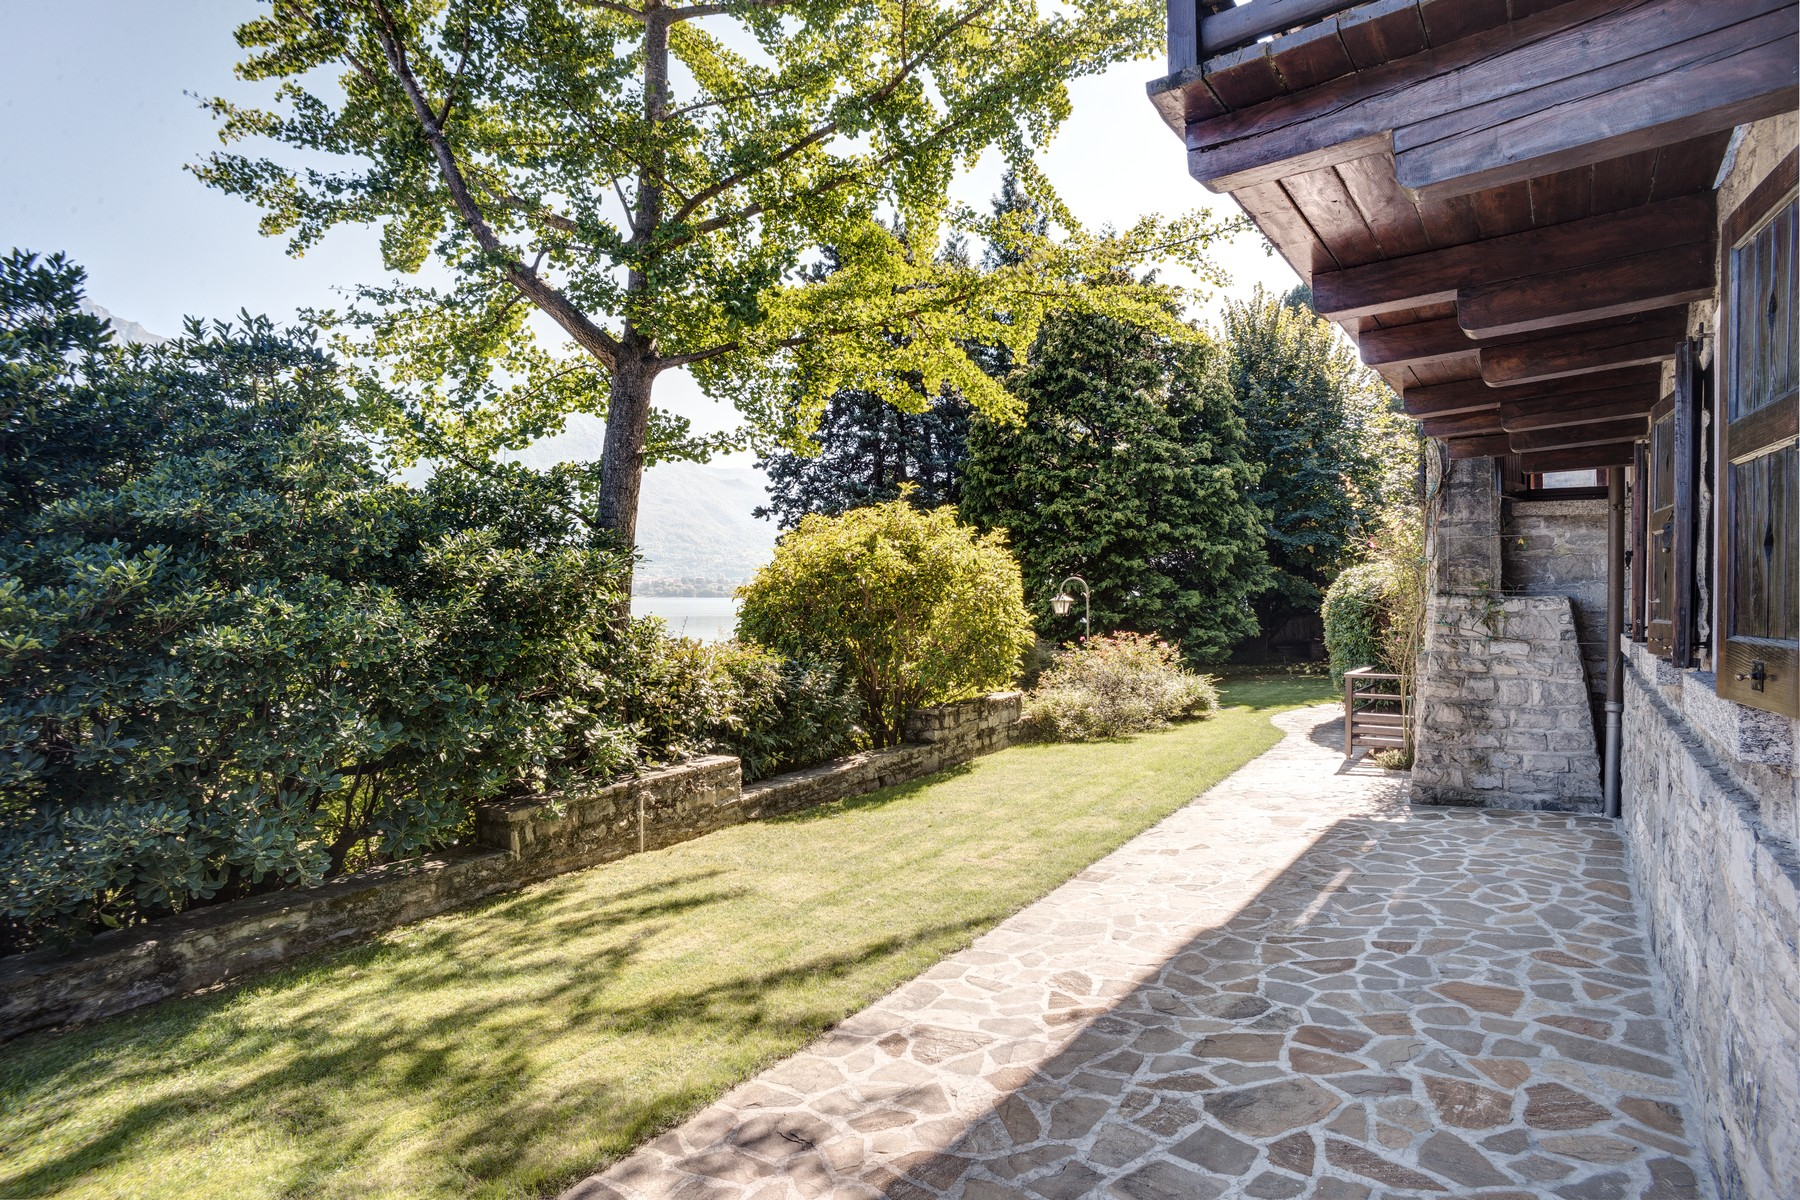 Additional photo for property listing at Magnificent property pieds dans l'eau Via Cadorna Oliveto Lario, Lecco 23865 Italia